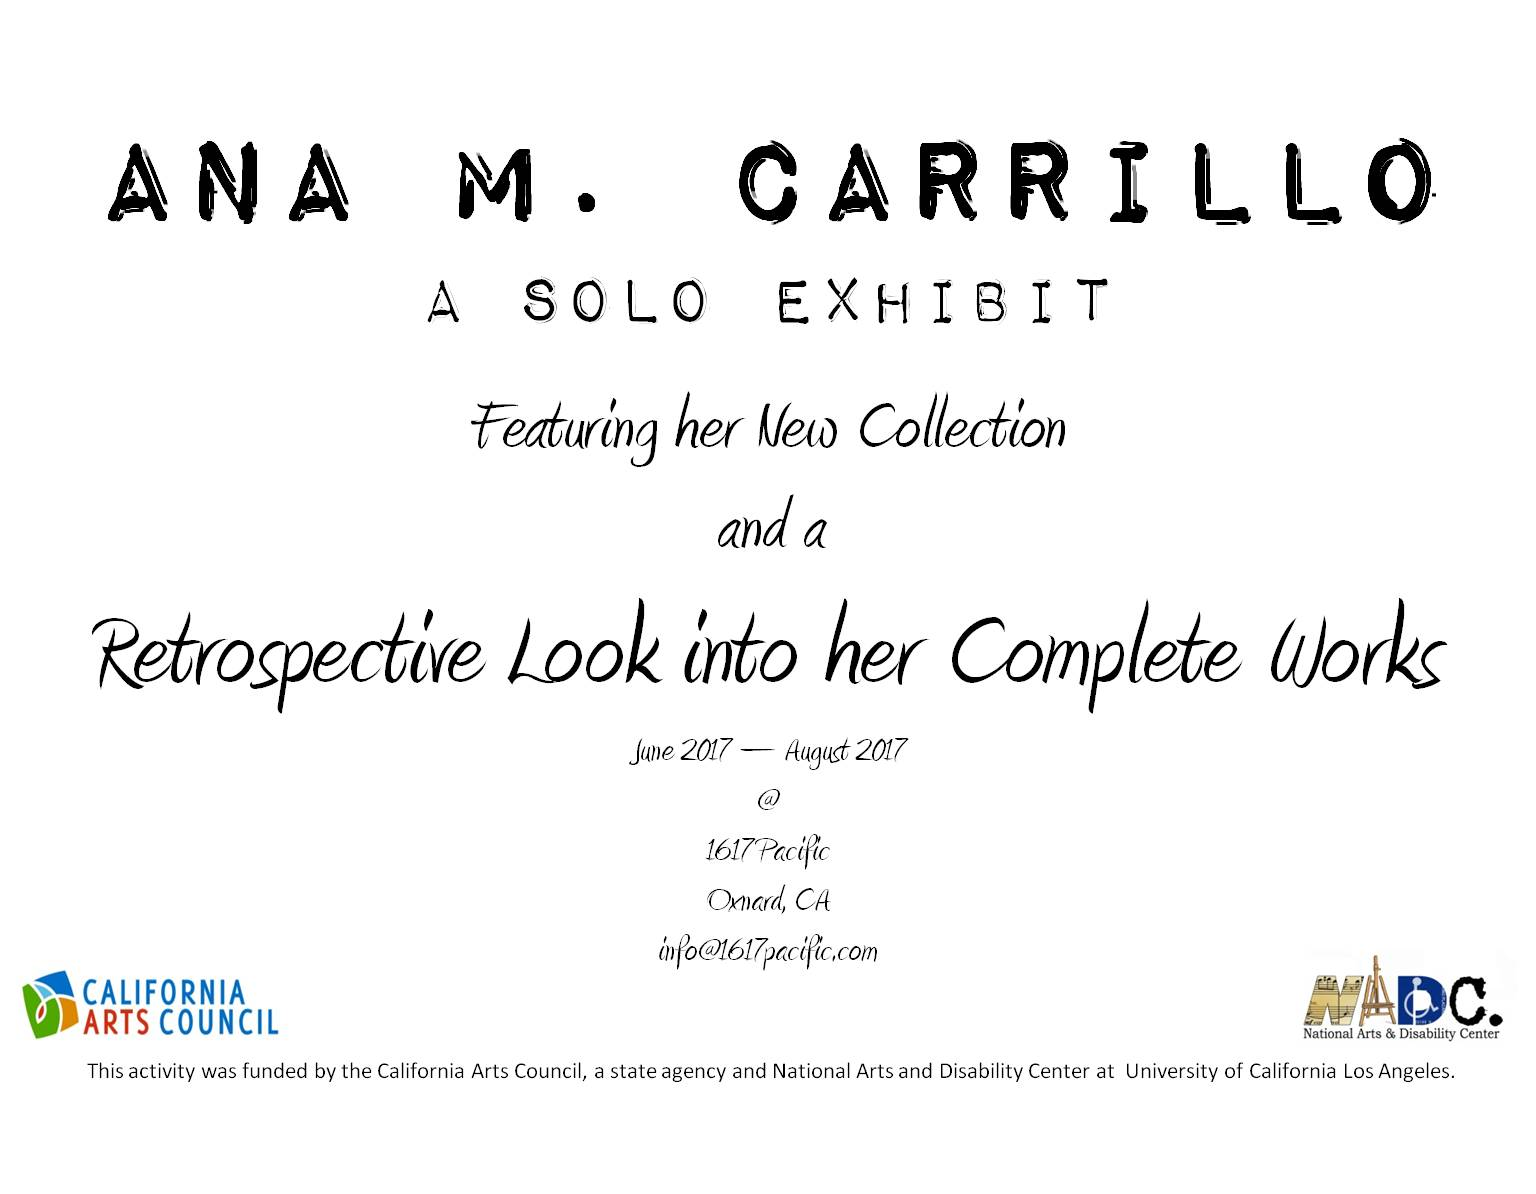 Through August — 1617 Pacific art studio in Oxnard presents 'Ana M. Carrillo: A Solo Exhibit'